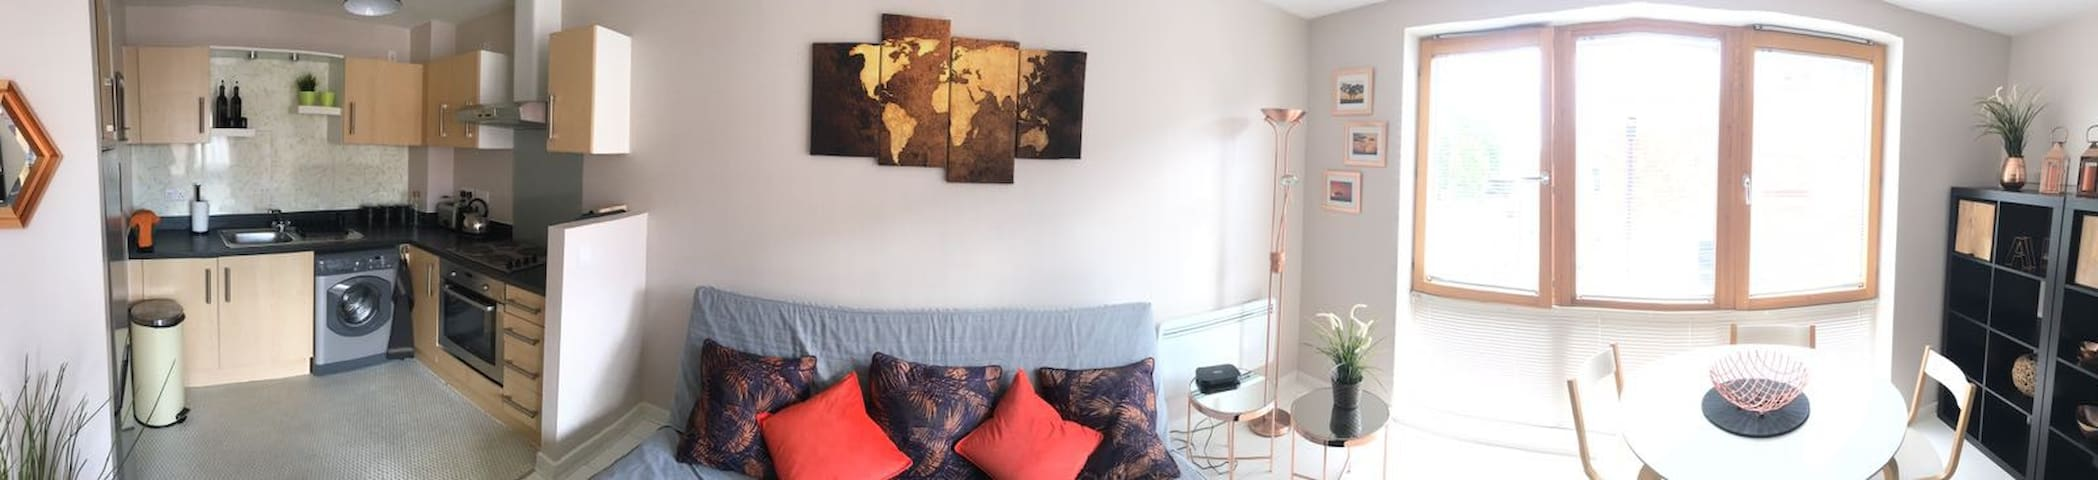 Stylish flat in the new city of Bristol